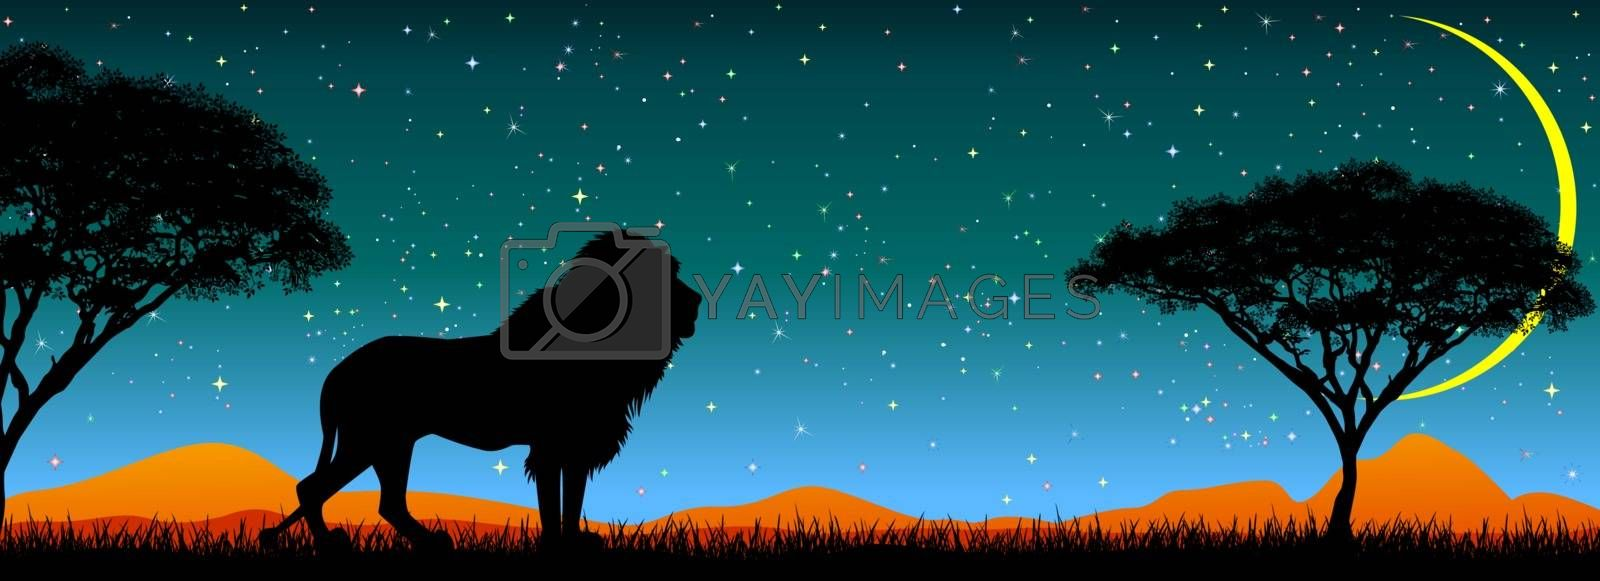 Silhouette of an African lion on a background of starry sky and trees. The night, the moon. African wild landscape. Wildlife of Africa.